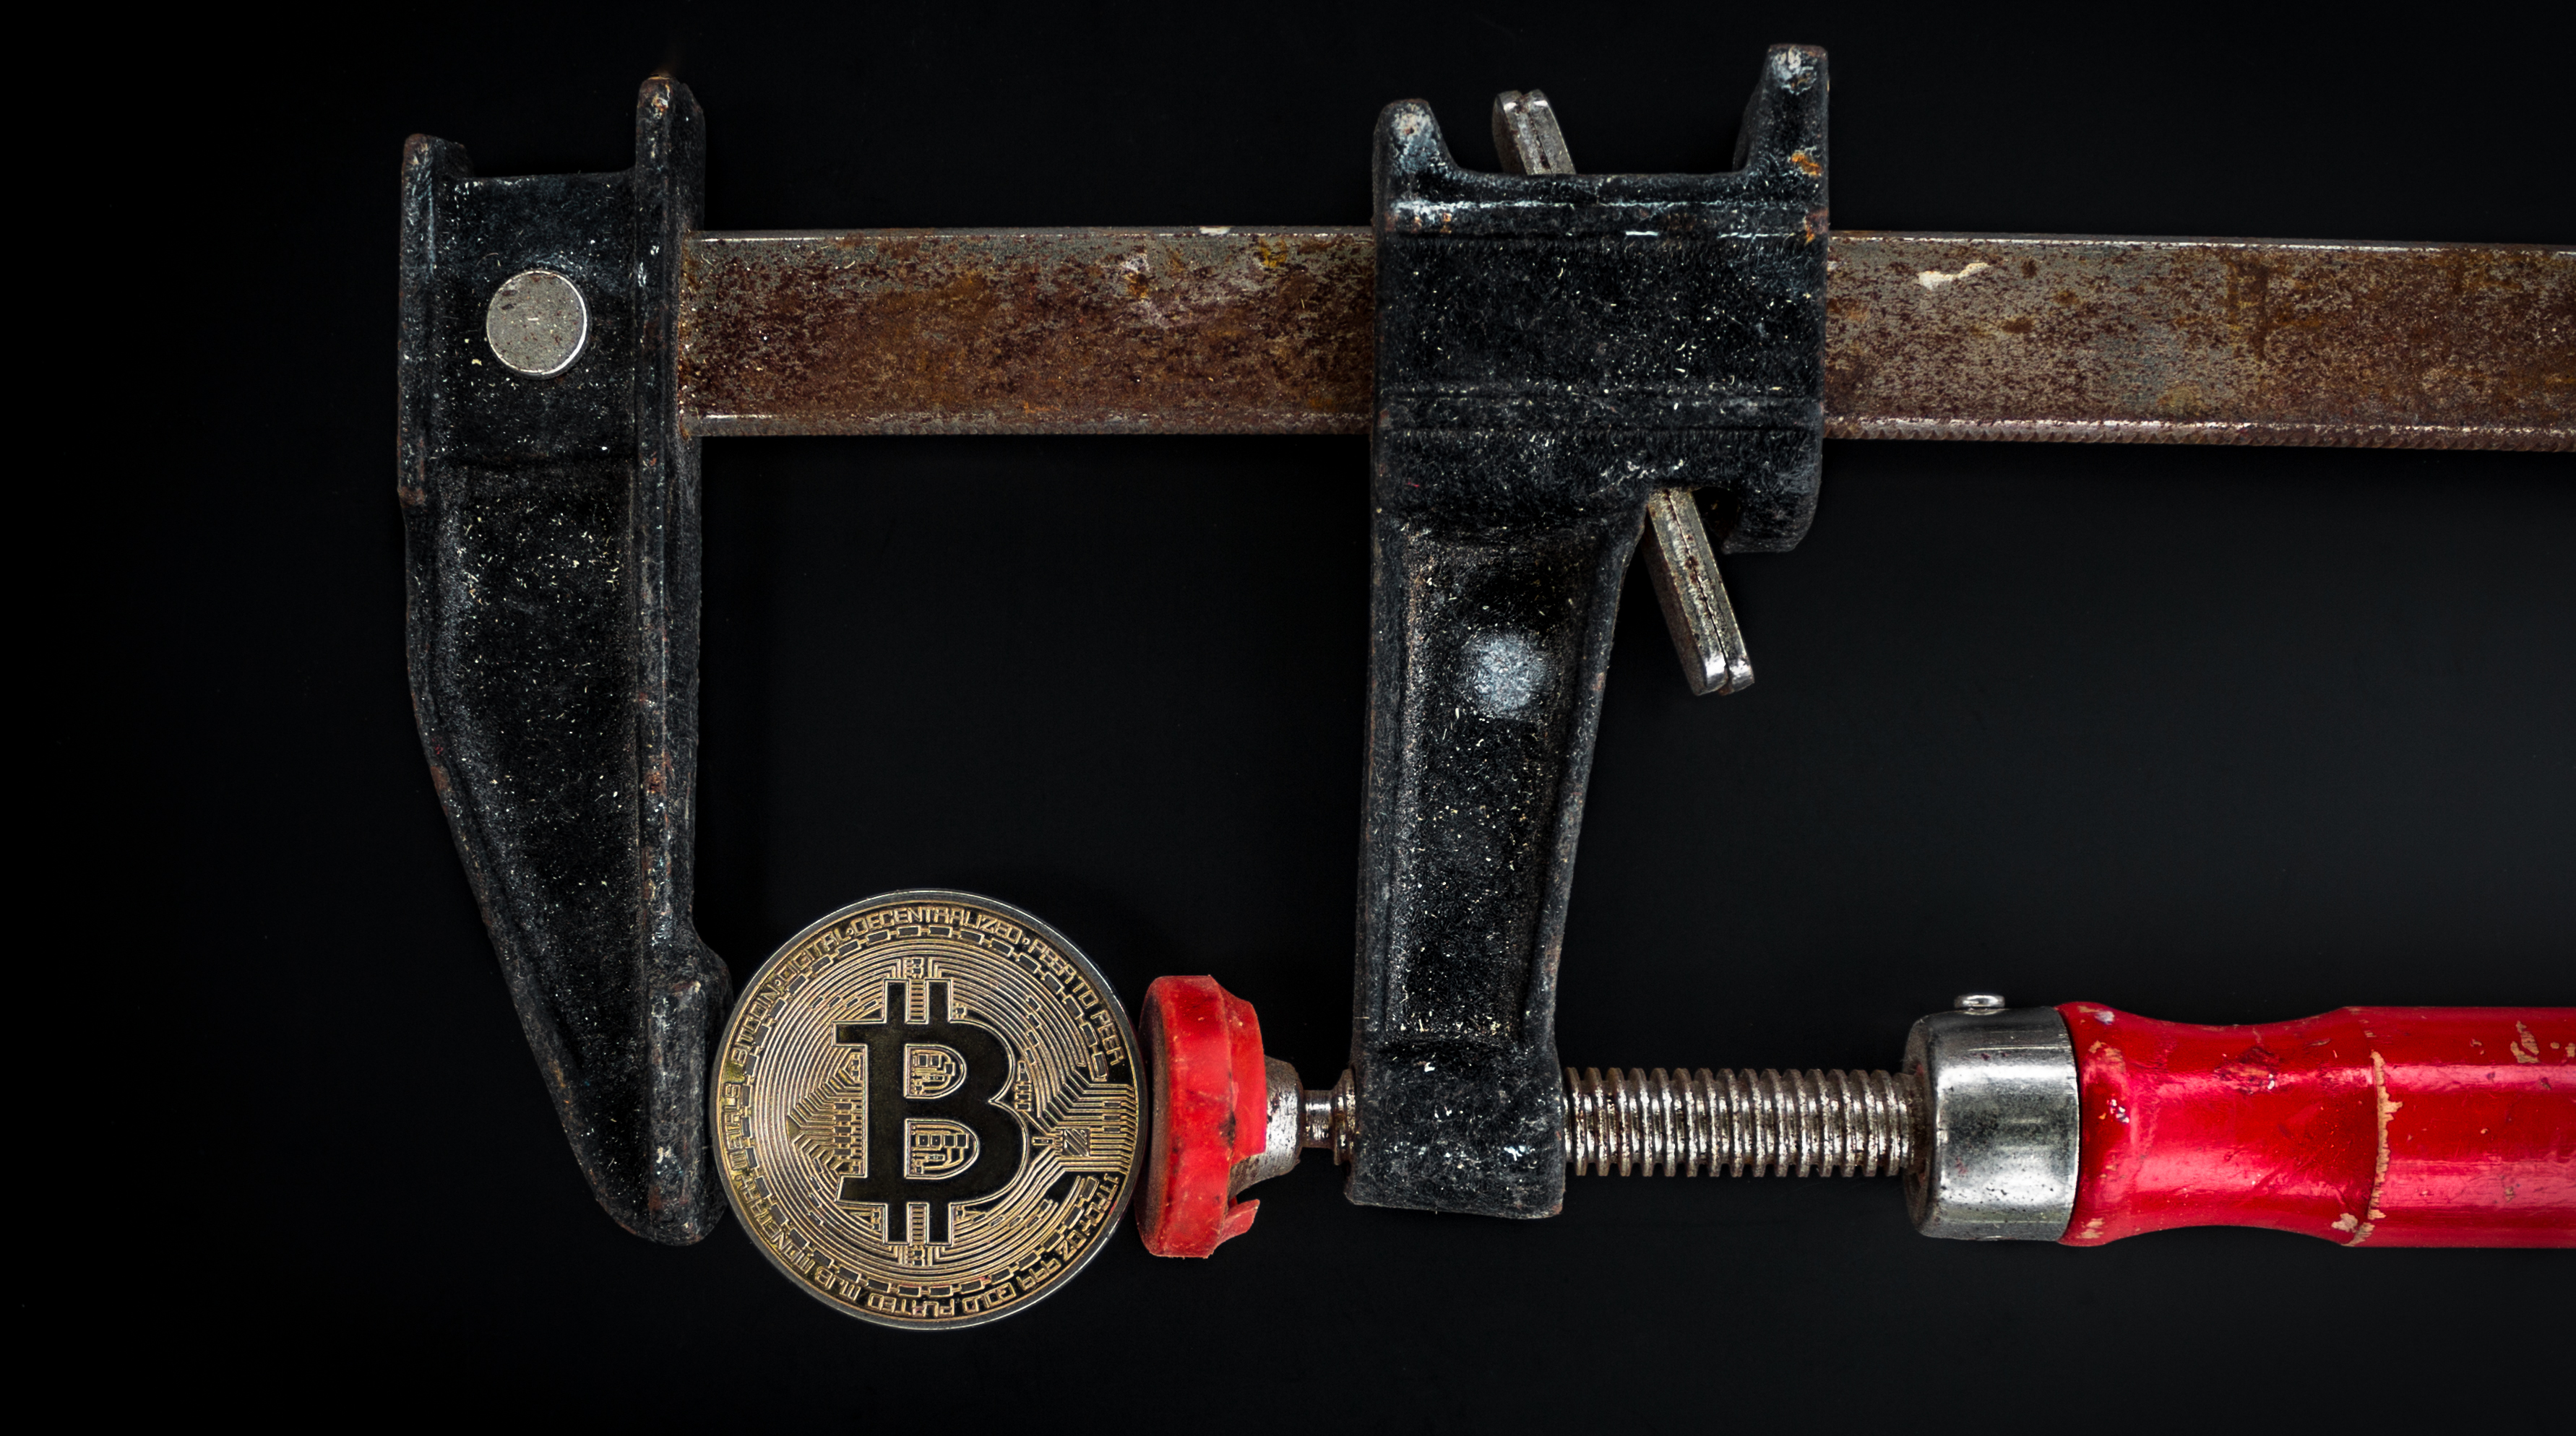 Black and Red Caliper on Gold-colored Bitcoin